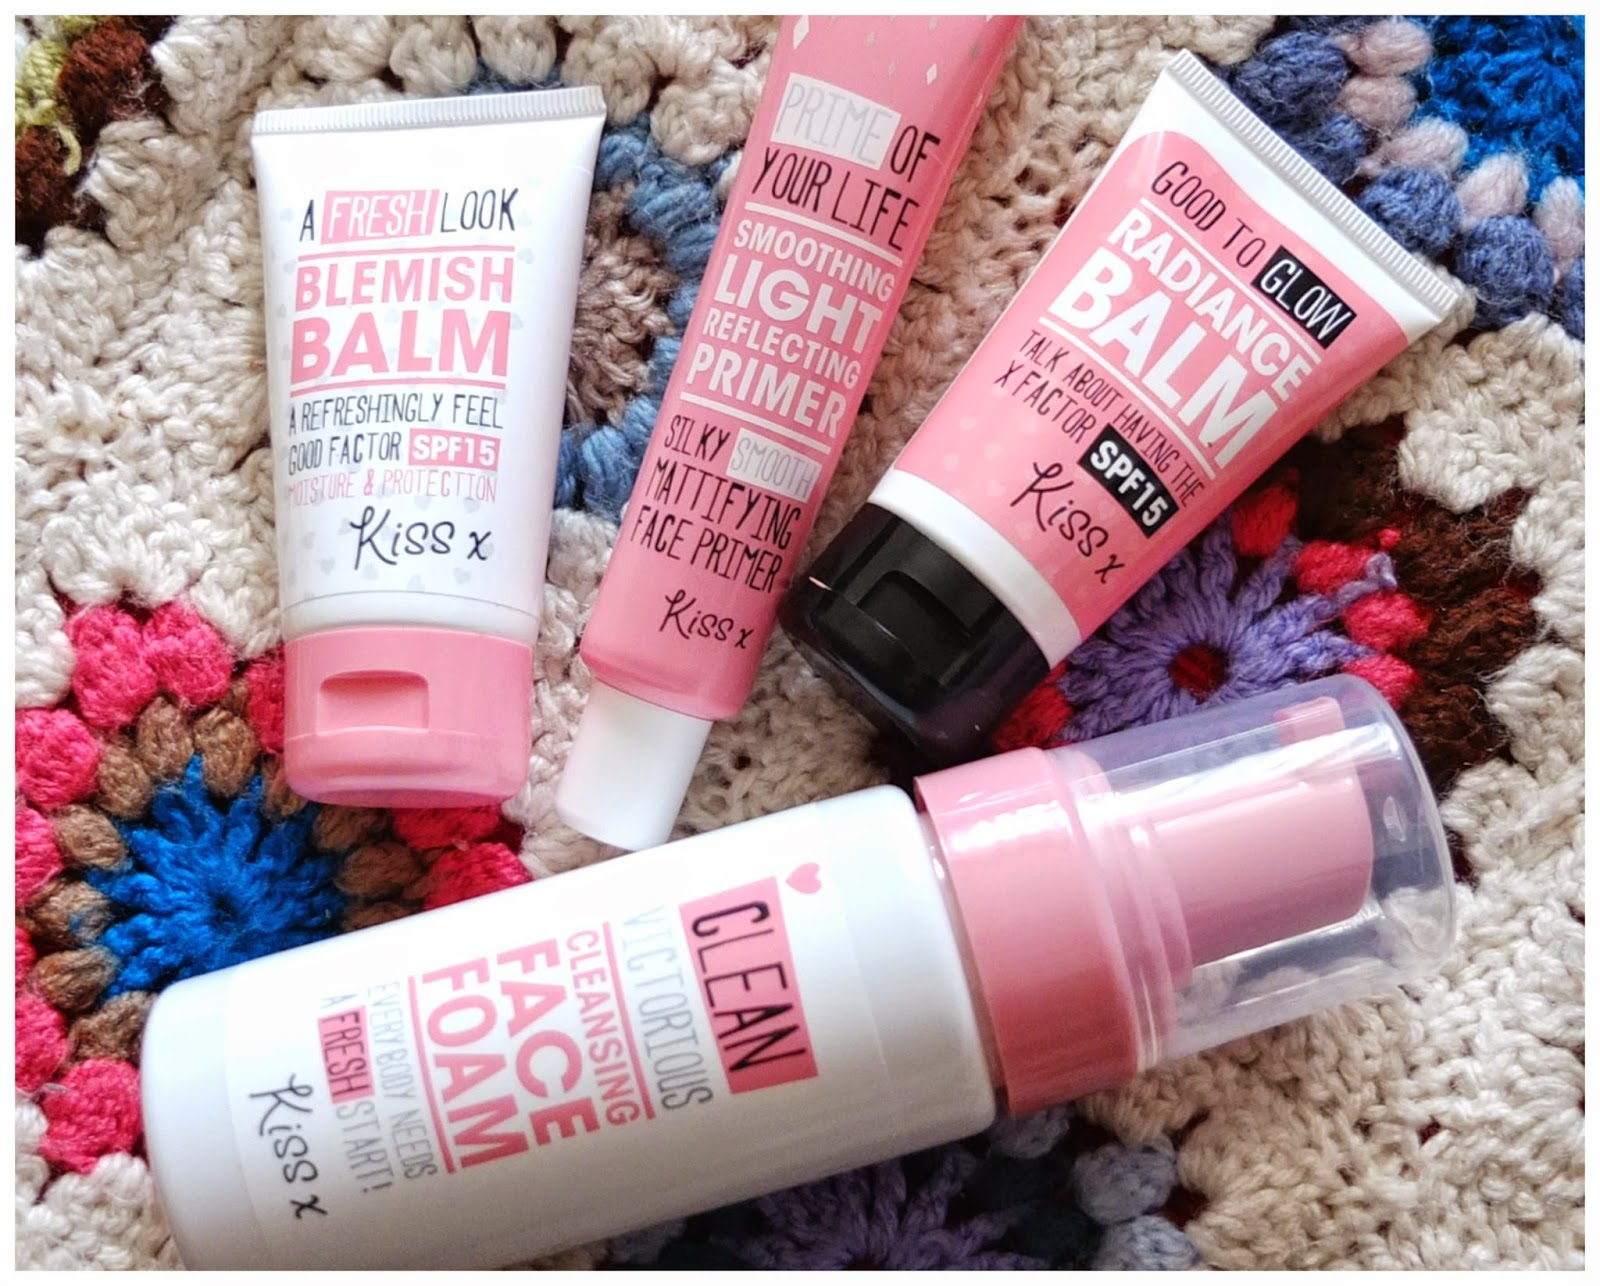 Budget Beauty Buys: Blog review of the Kiss range from Wilko stores including Primer, BB Cream and Radiance Balm.